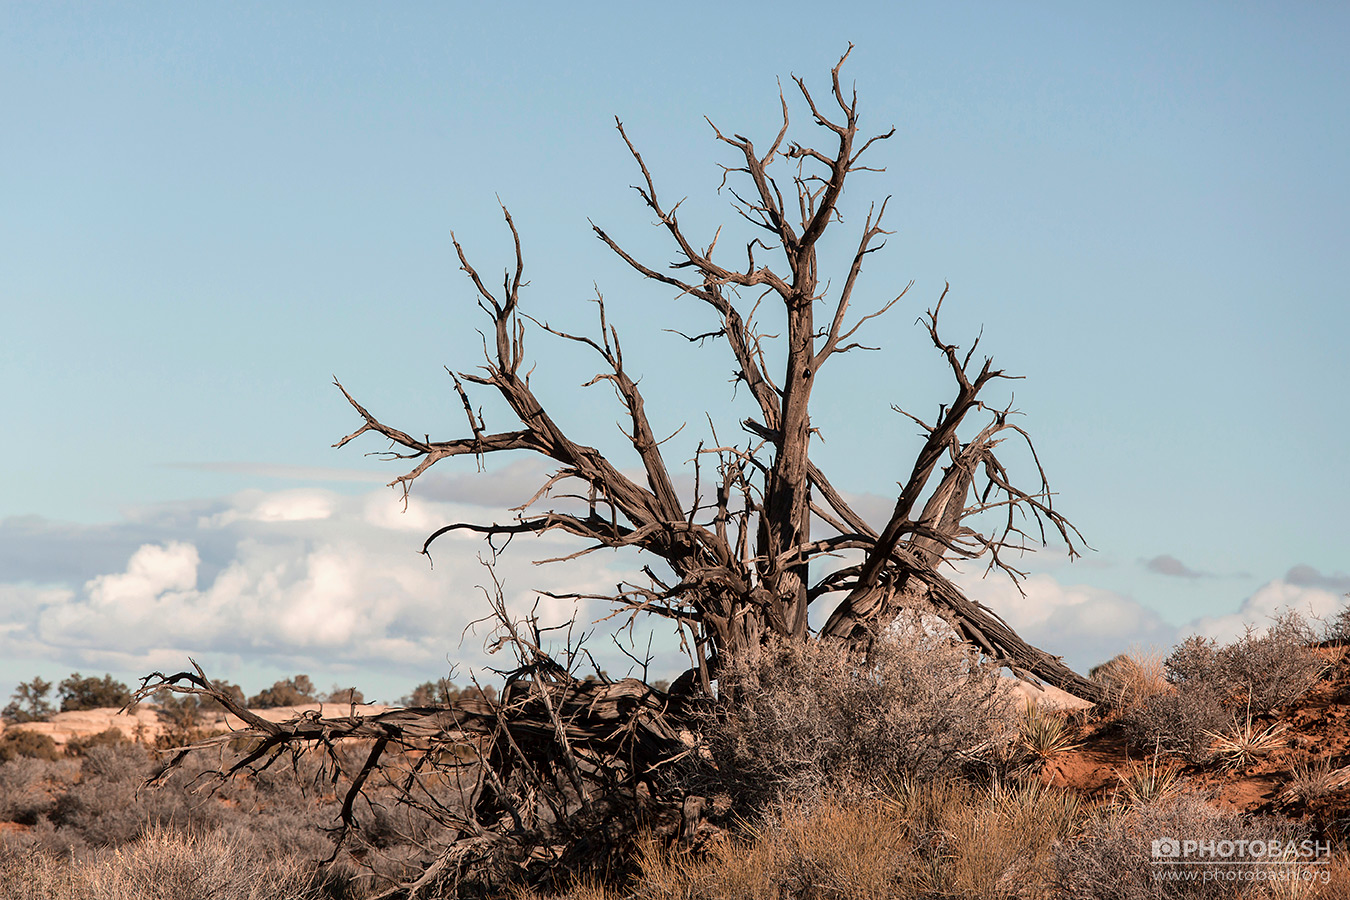 Red-Canyon-Dead-Tree-Branches.jpg